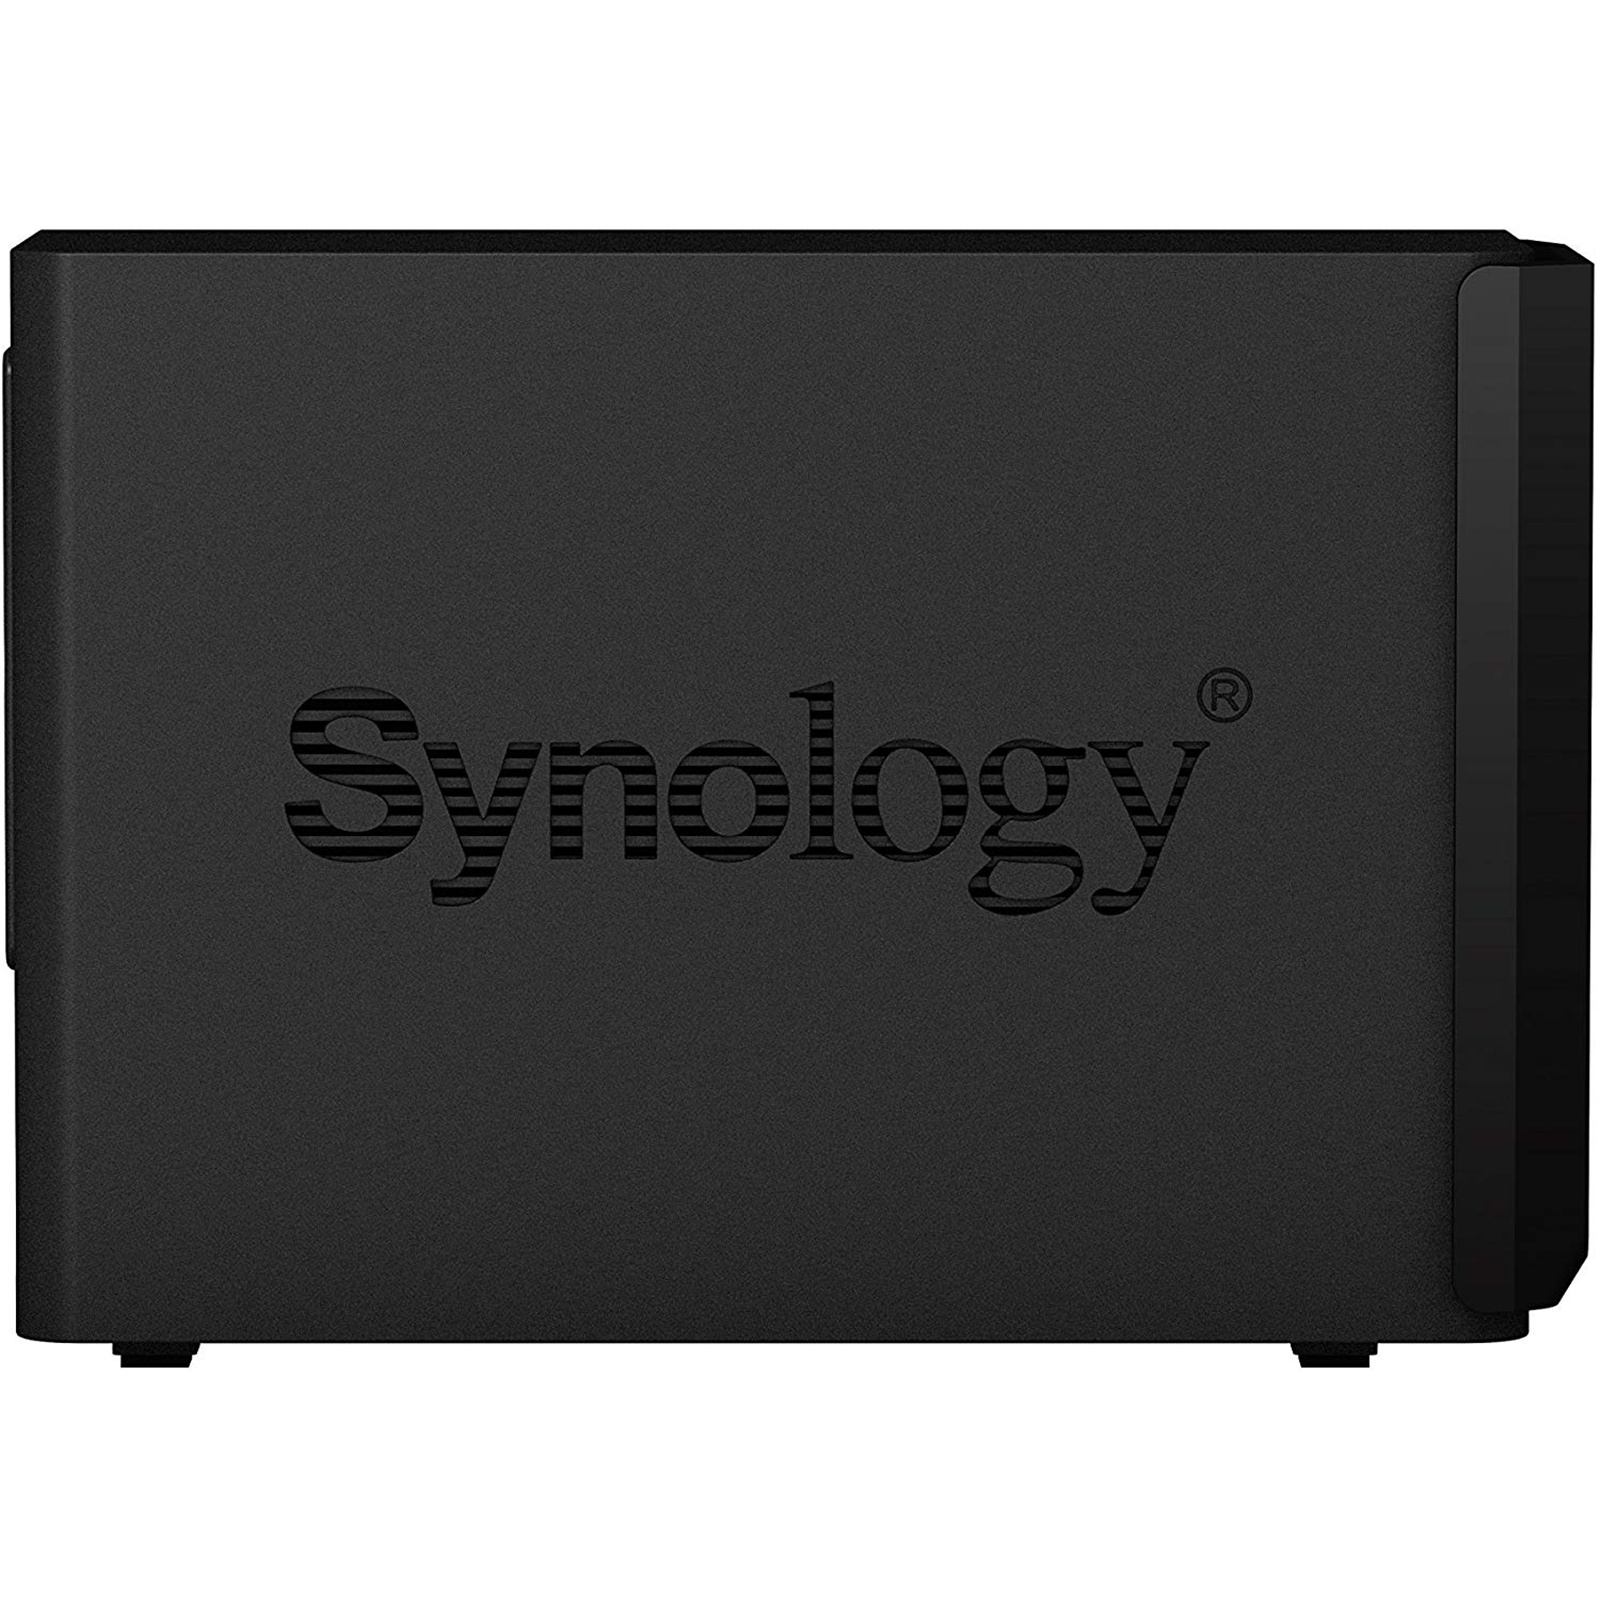 Buy the Synology DiskStation DS218+ 2-Bay NAS Server, Dual